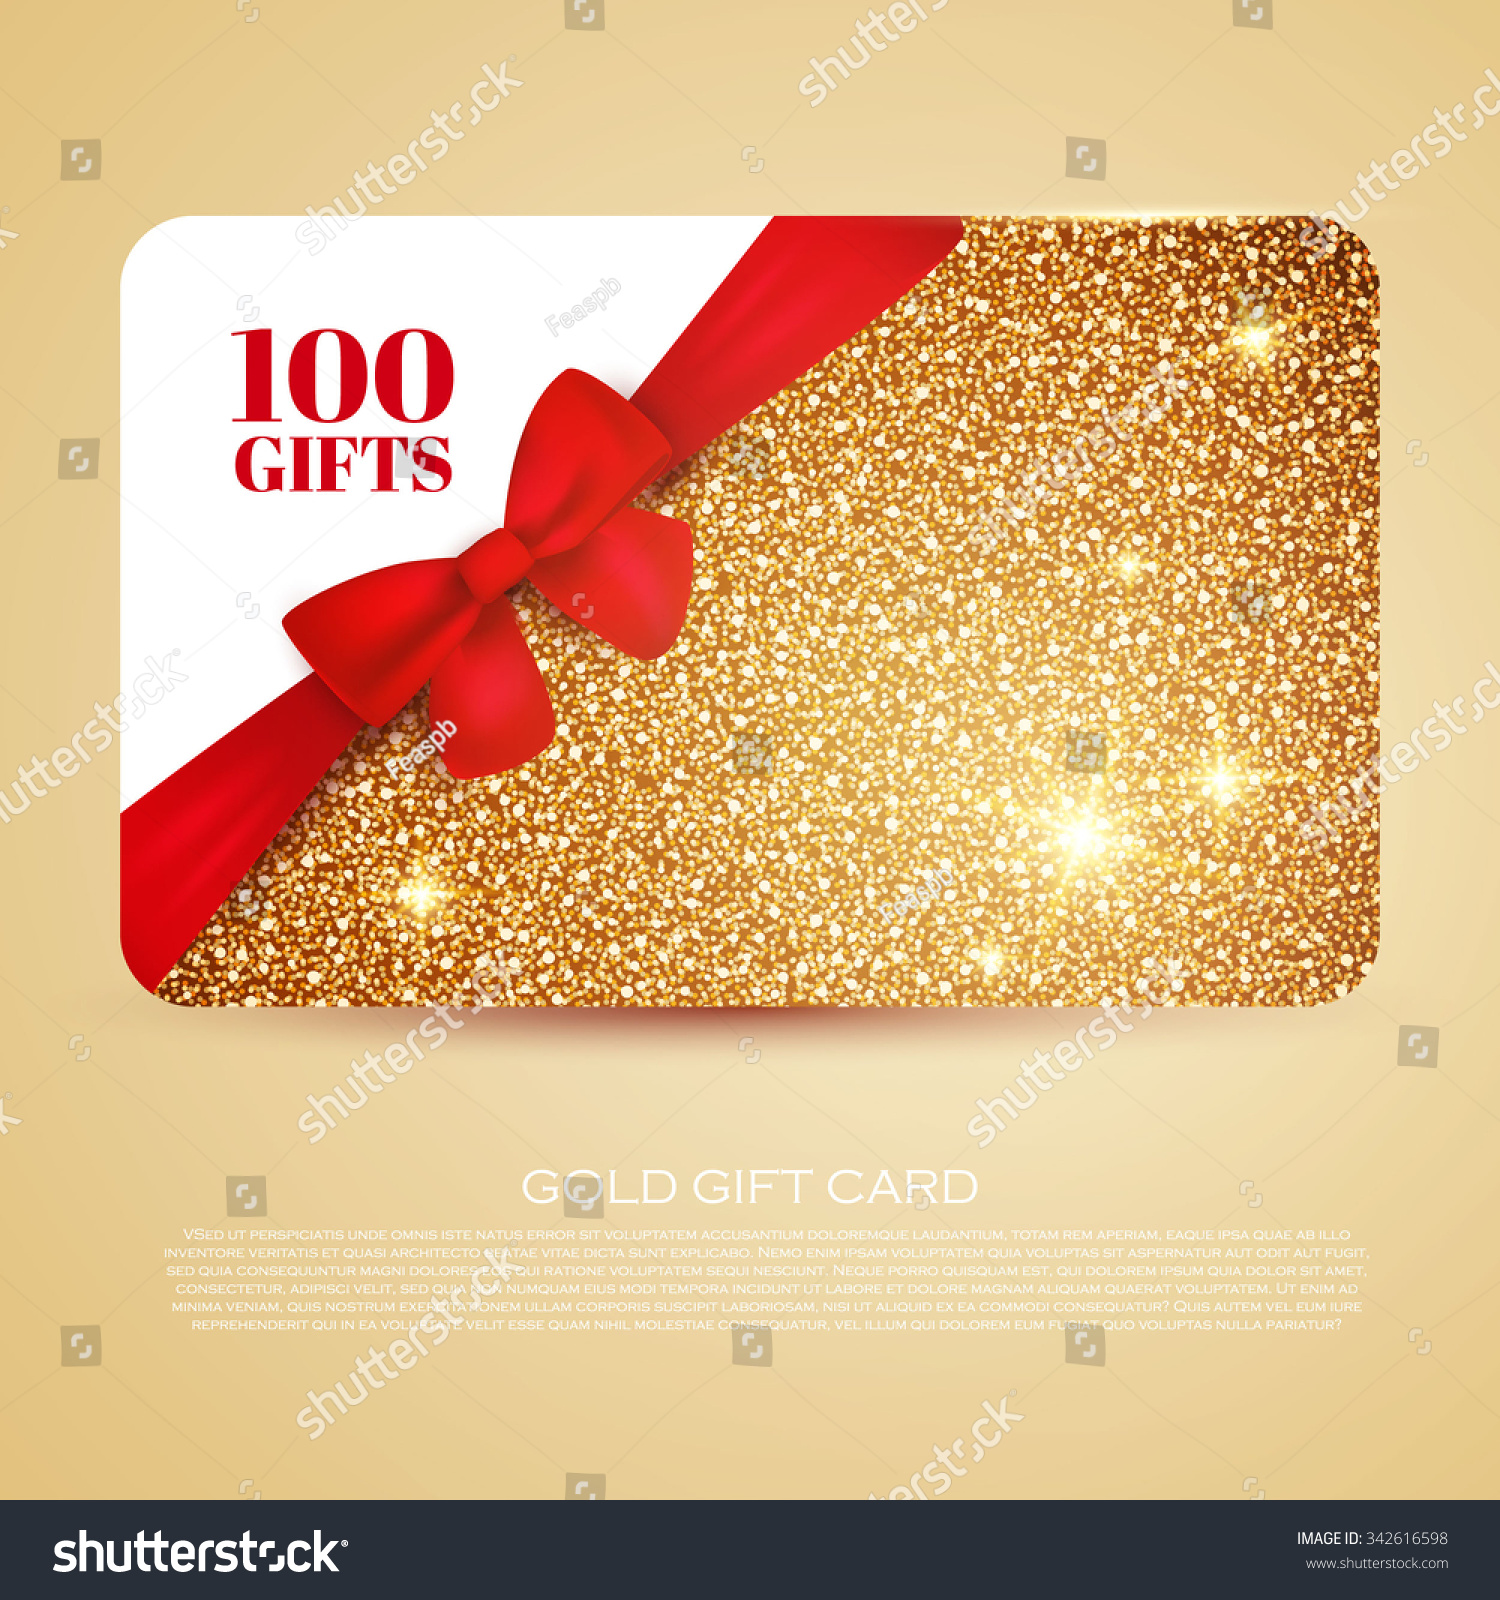 Gold Gift Coupon Gift Card Discount Stock Vector 342616598 ...